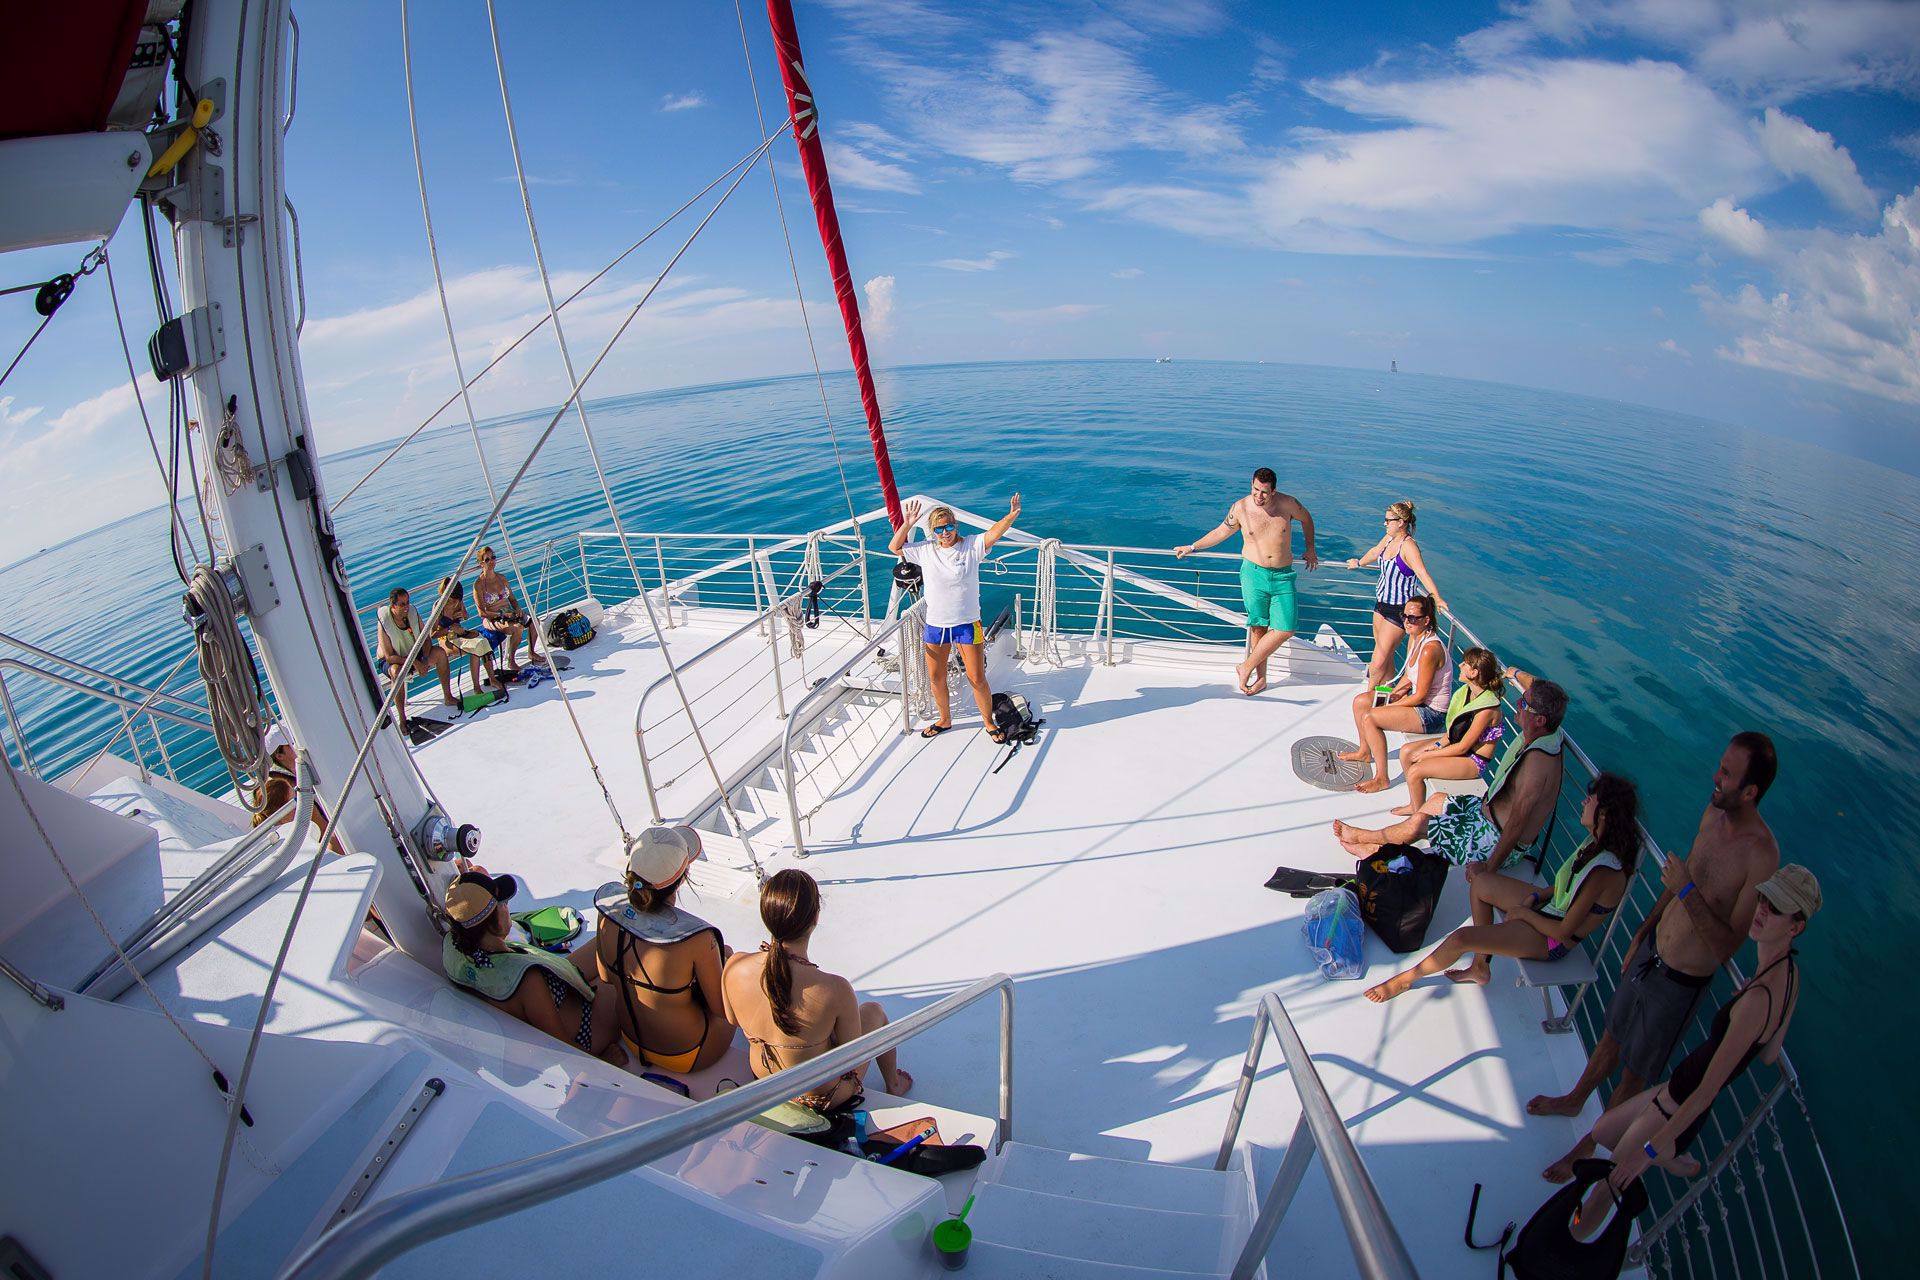 An afternoon sail that takes you to the reef